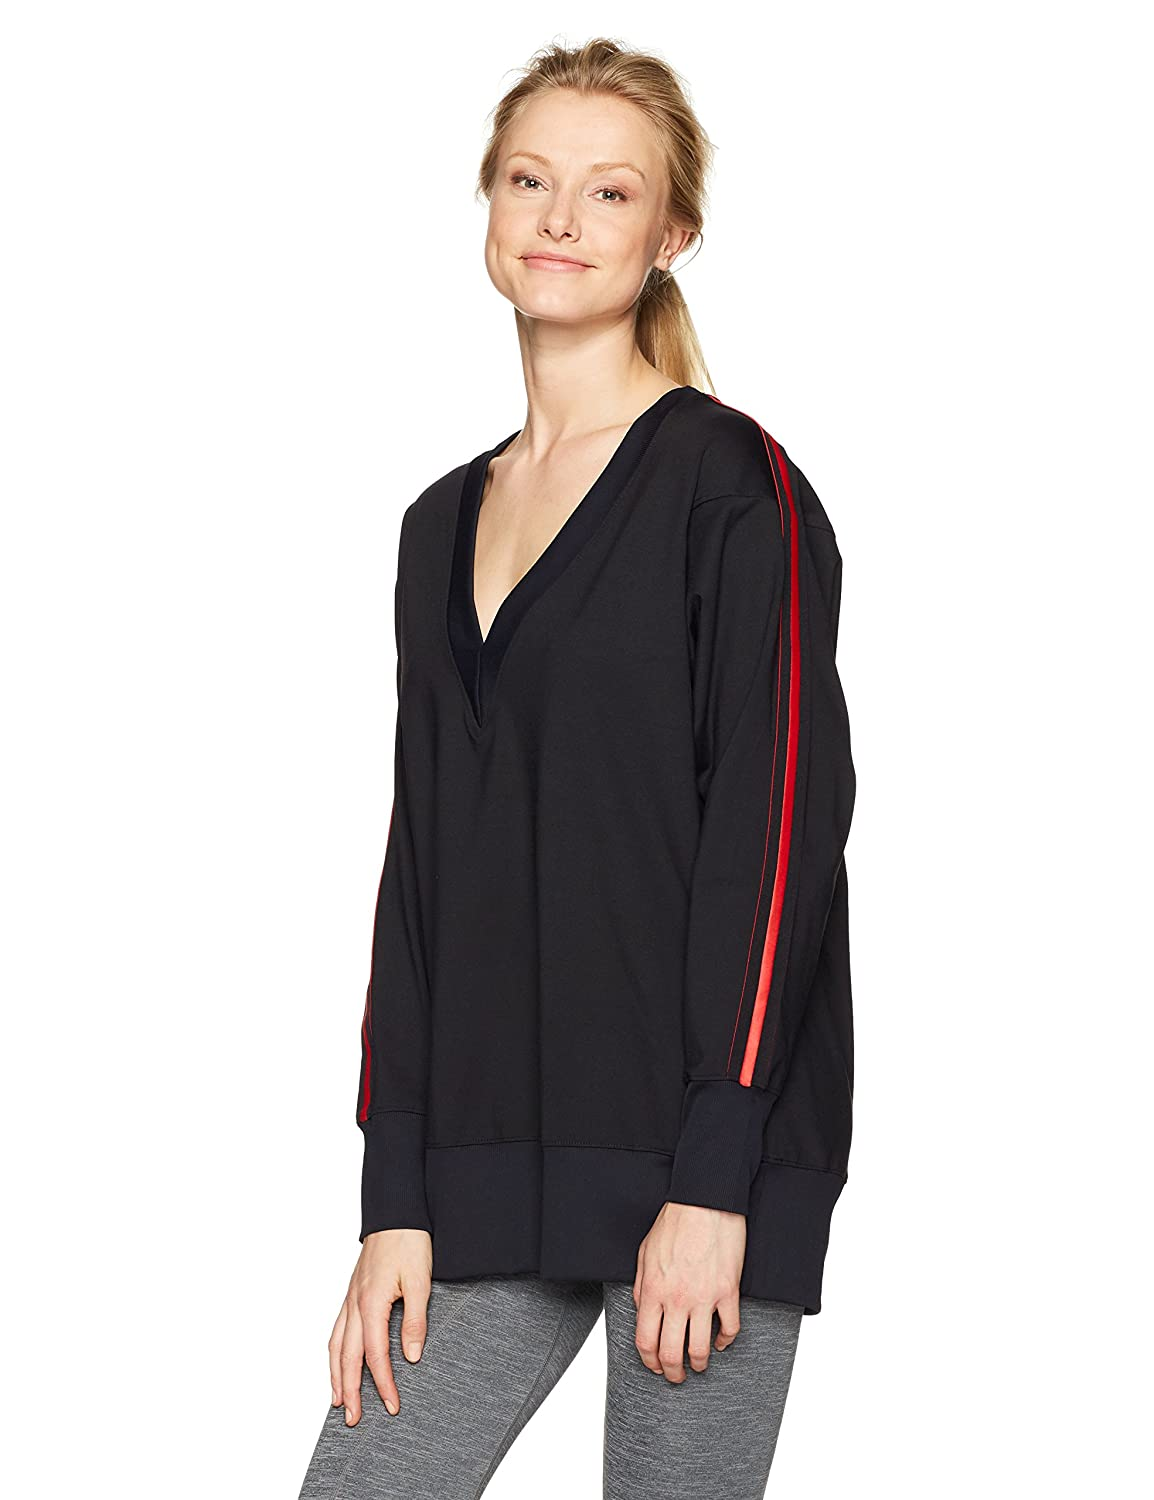 Image of Active Sweatshirts Koral Women's Axis Pullover